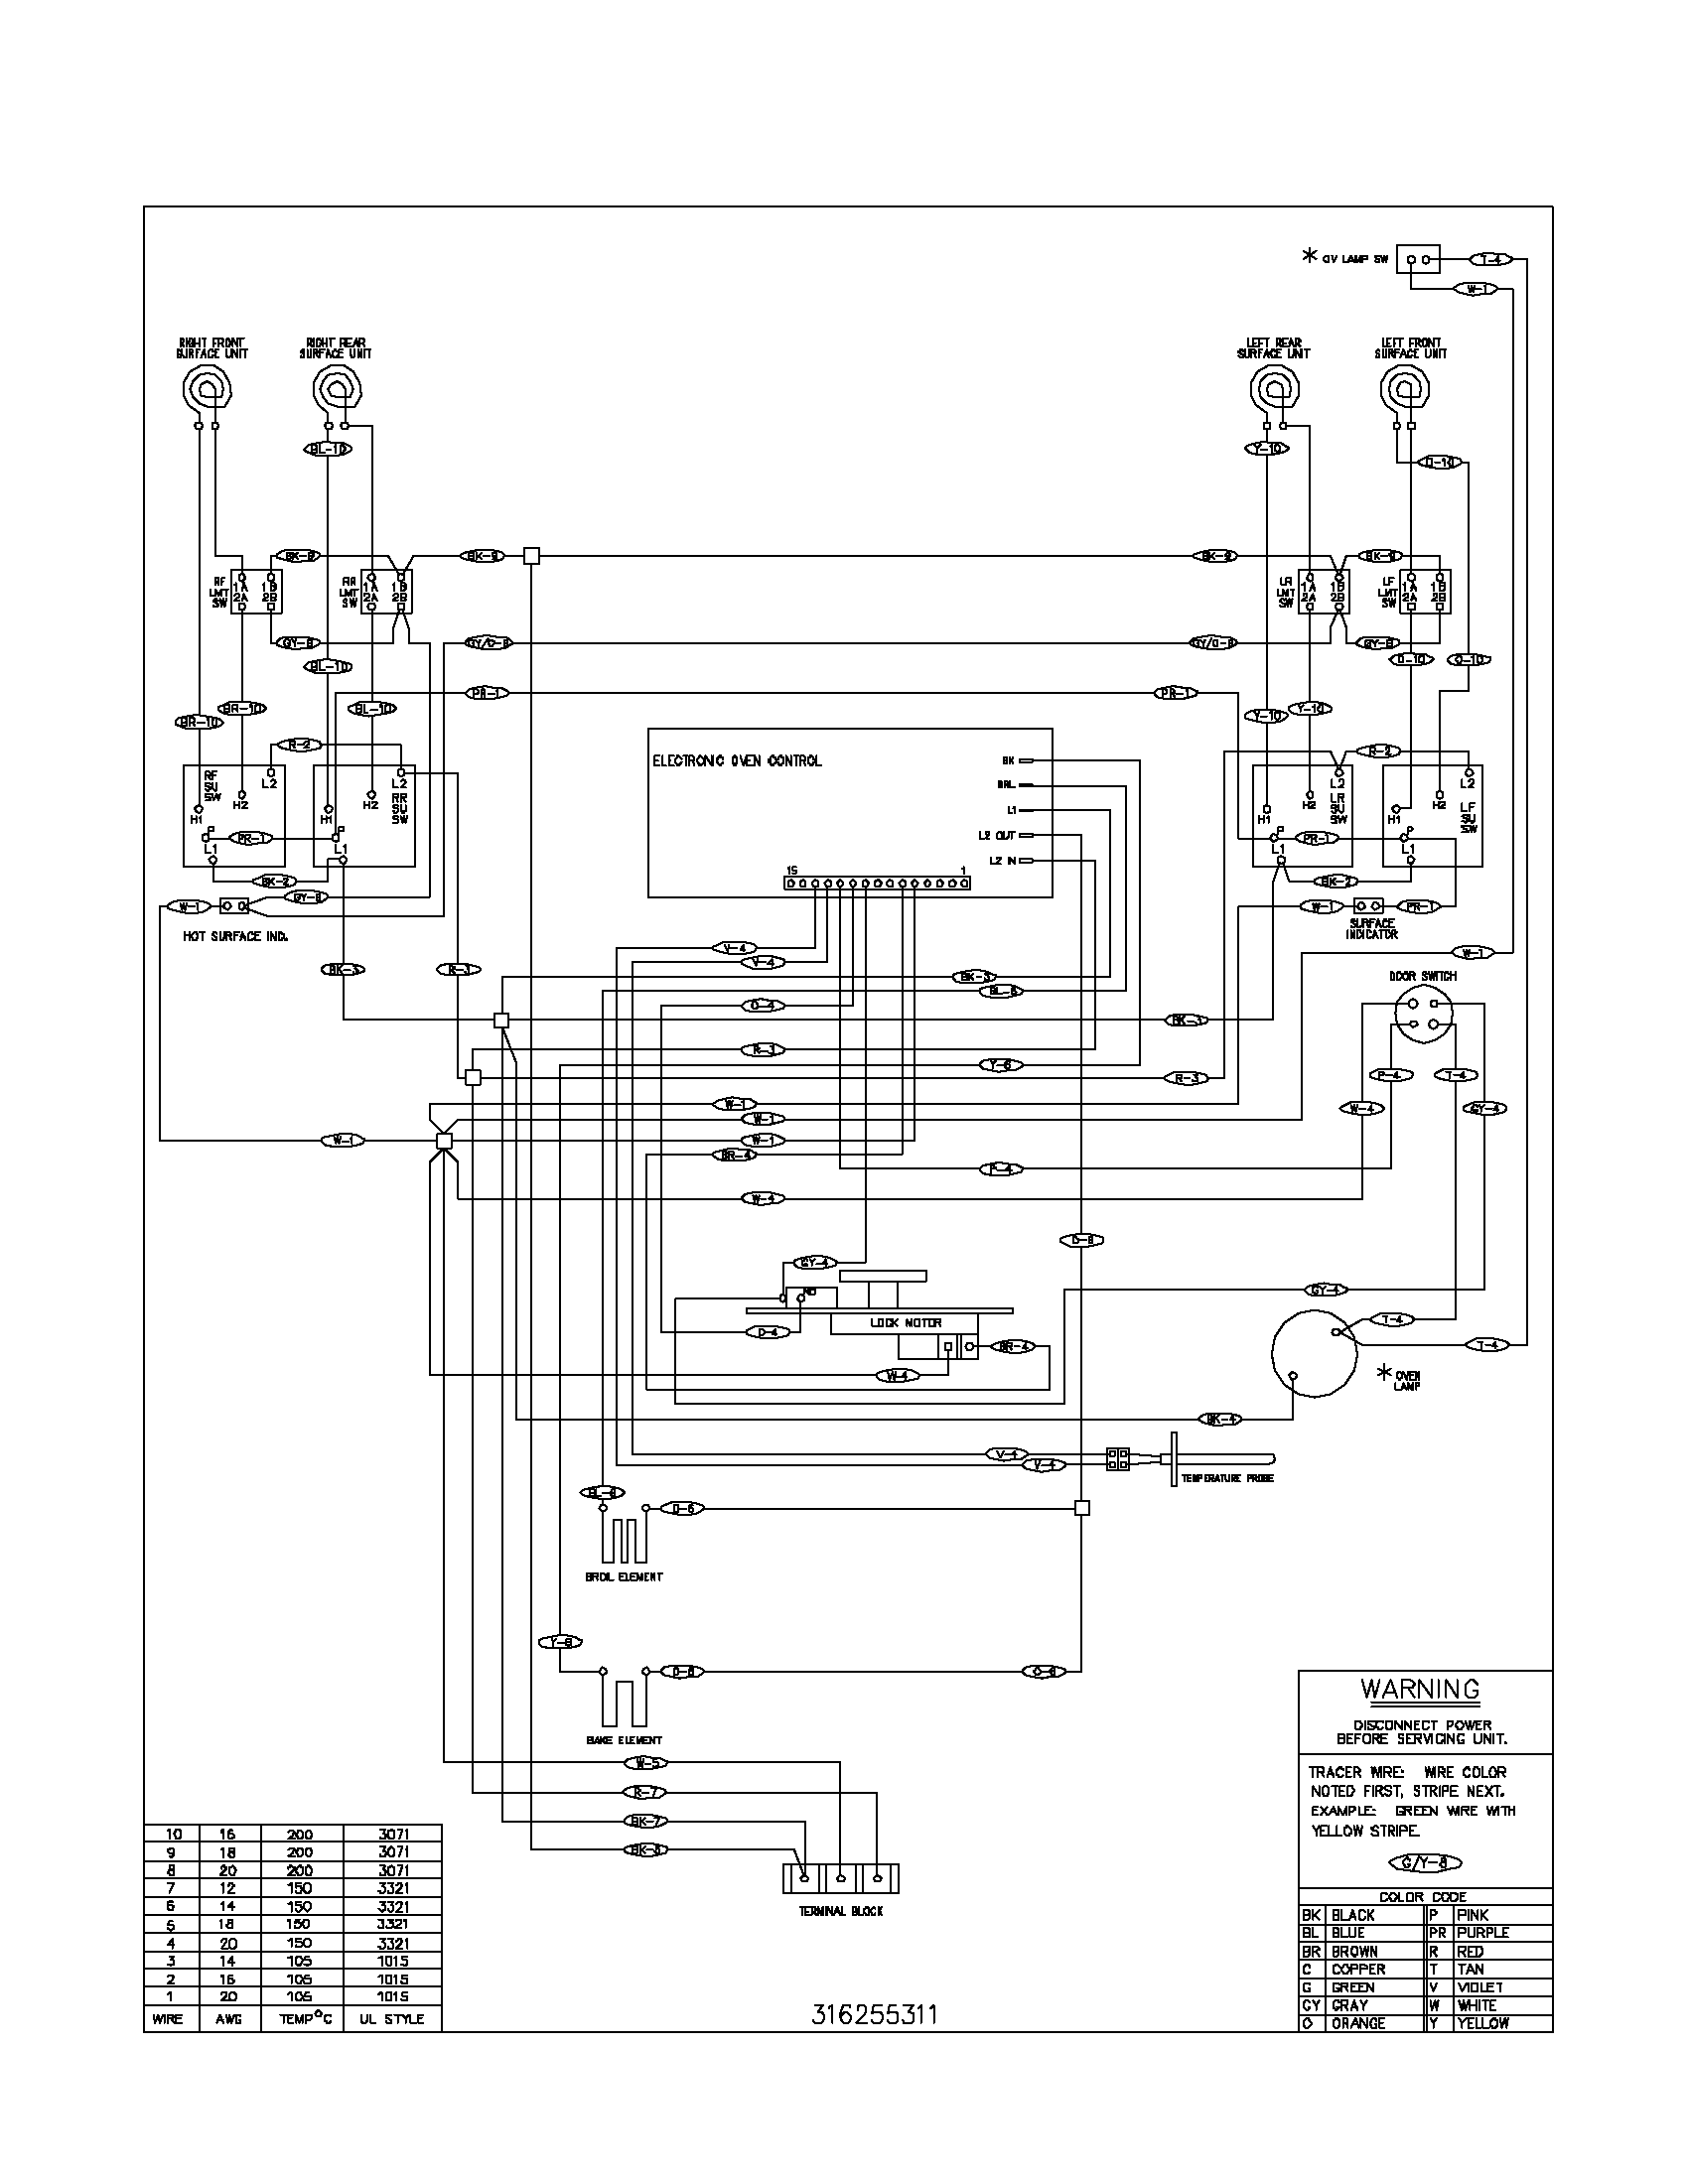 How To Electrical Wiring Diagrams : Frigidaire fef ccb electric range timer stove clocks